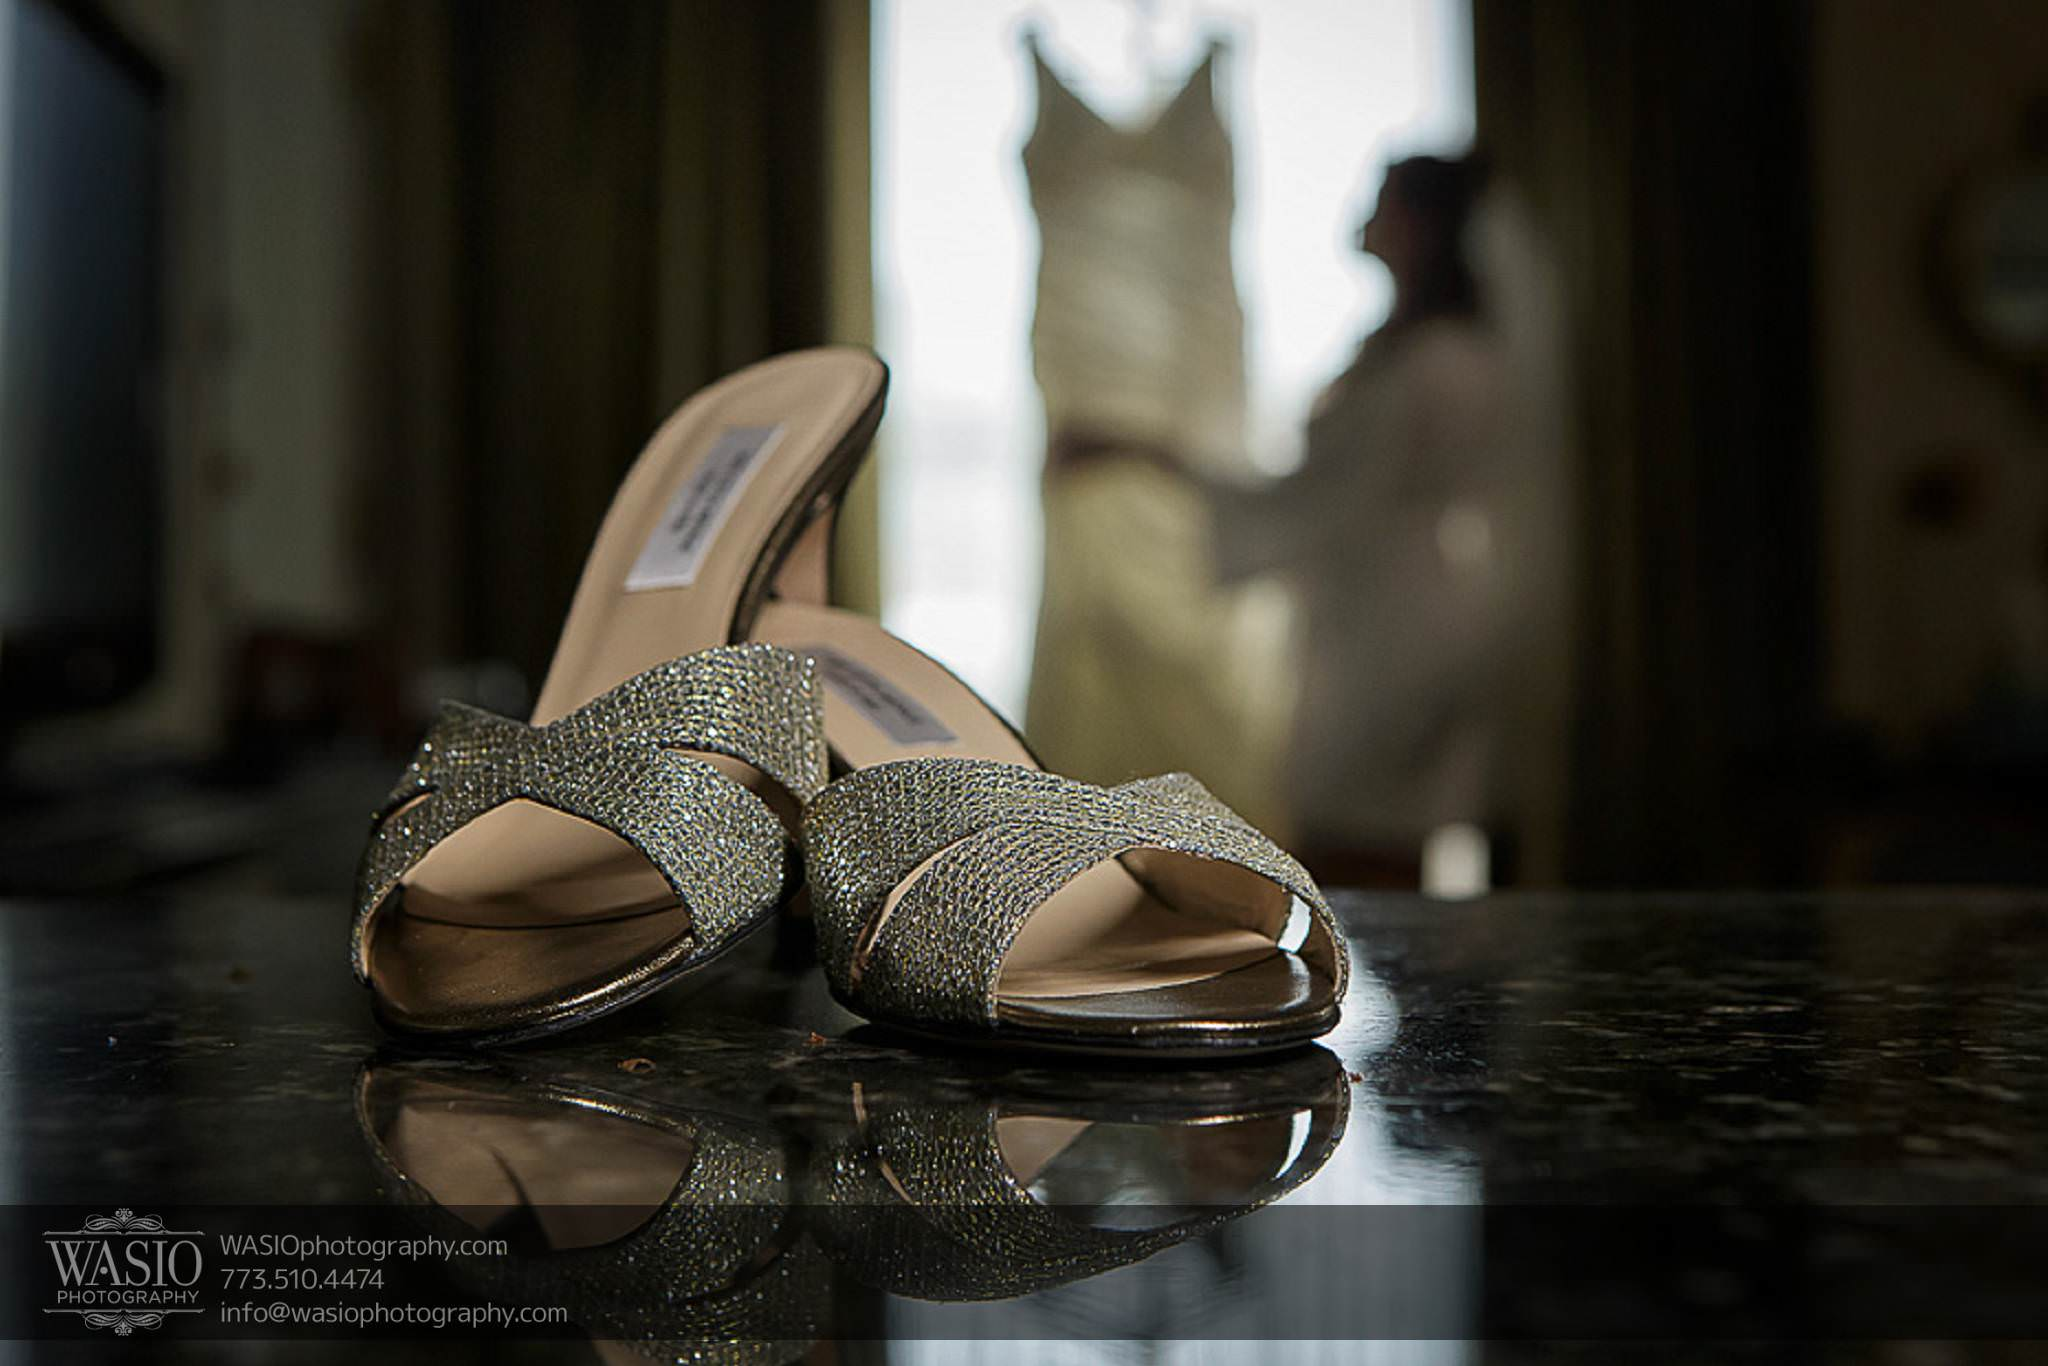 Chicago-wedding-photos-bridal-shoes-preparation-reflection-wedding-dress-unique-abstract-043 Chicago Wedding Photos - Svetlana + Yuriy